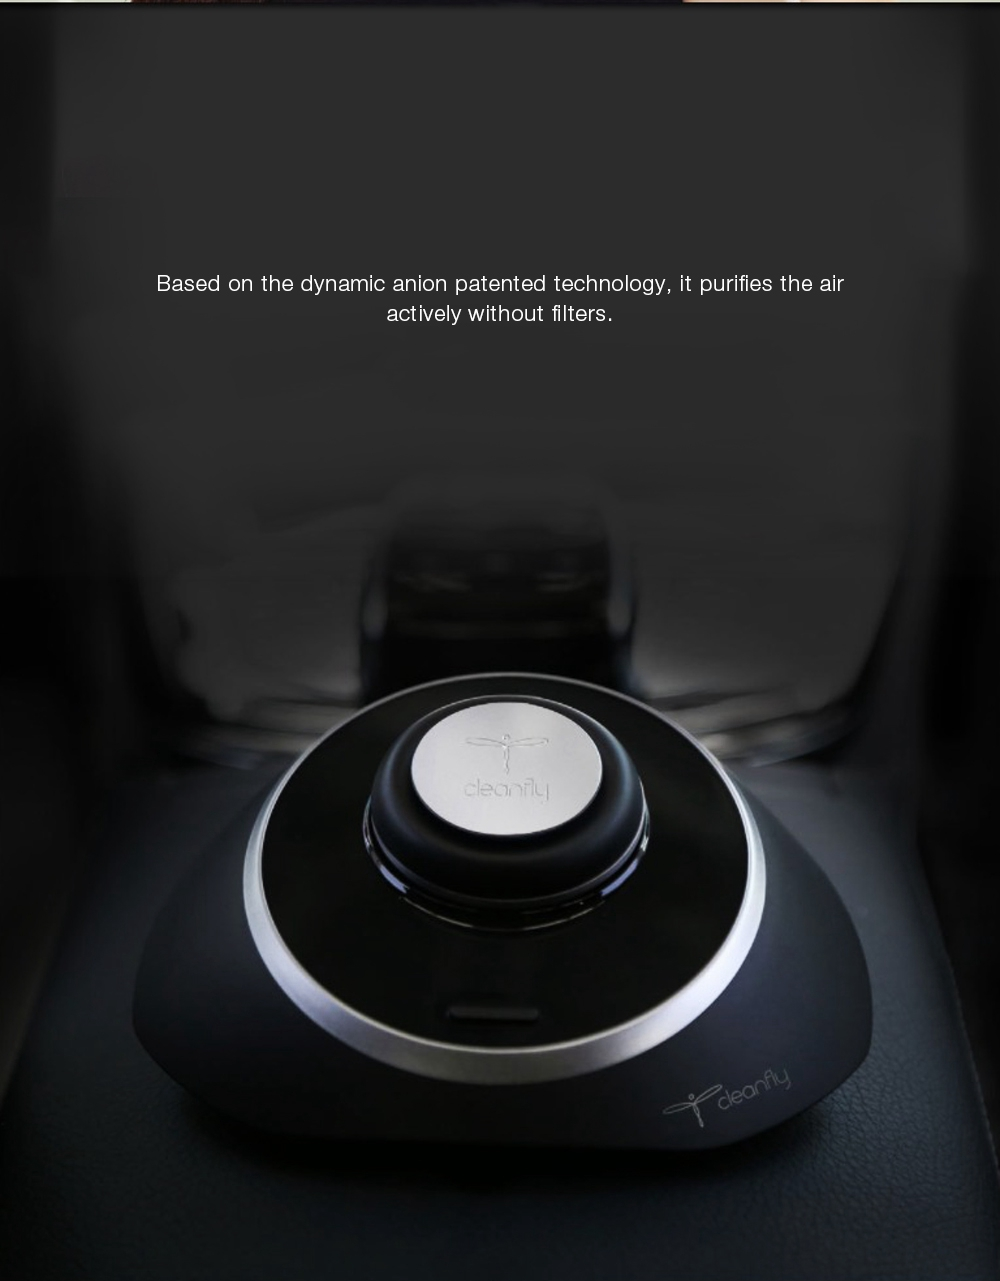 New original Xiaomi Mijia Cleanfly M1 Car Anion Air Purifier LED Display Mute Portable Purifier Support Parking Purification USB (7)